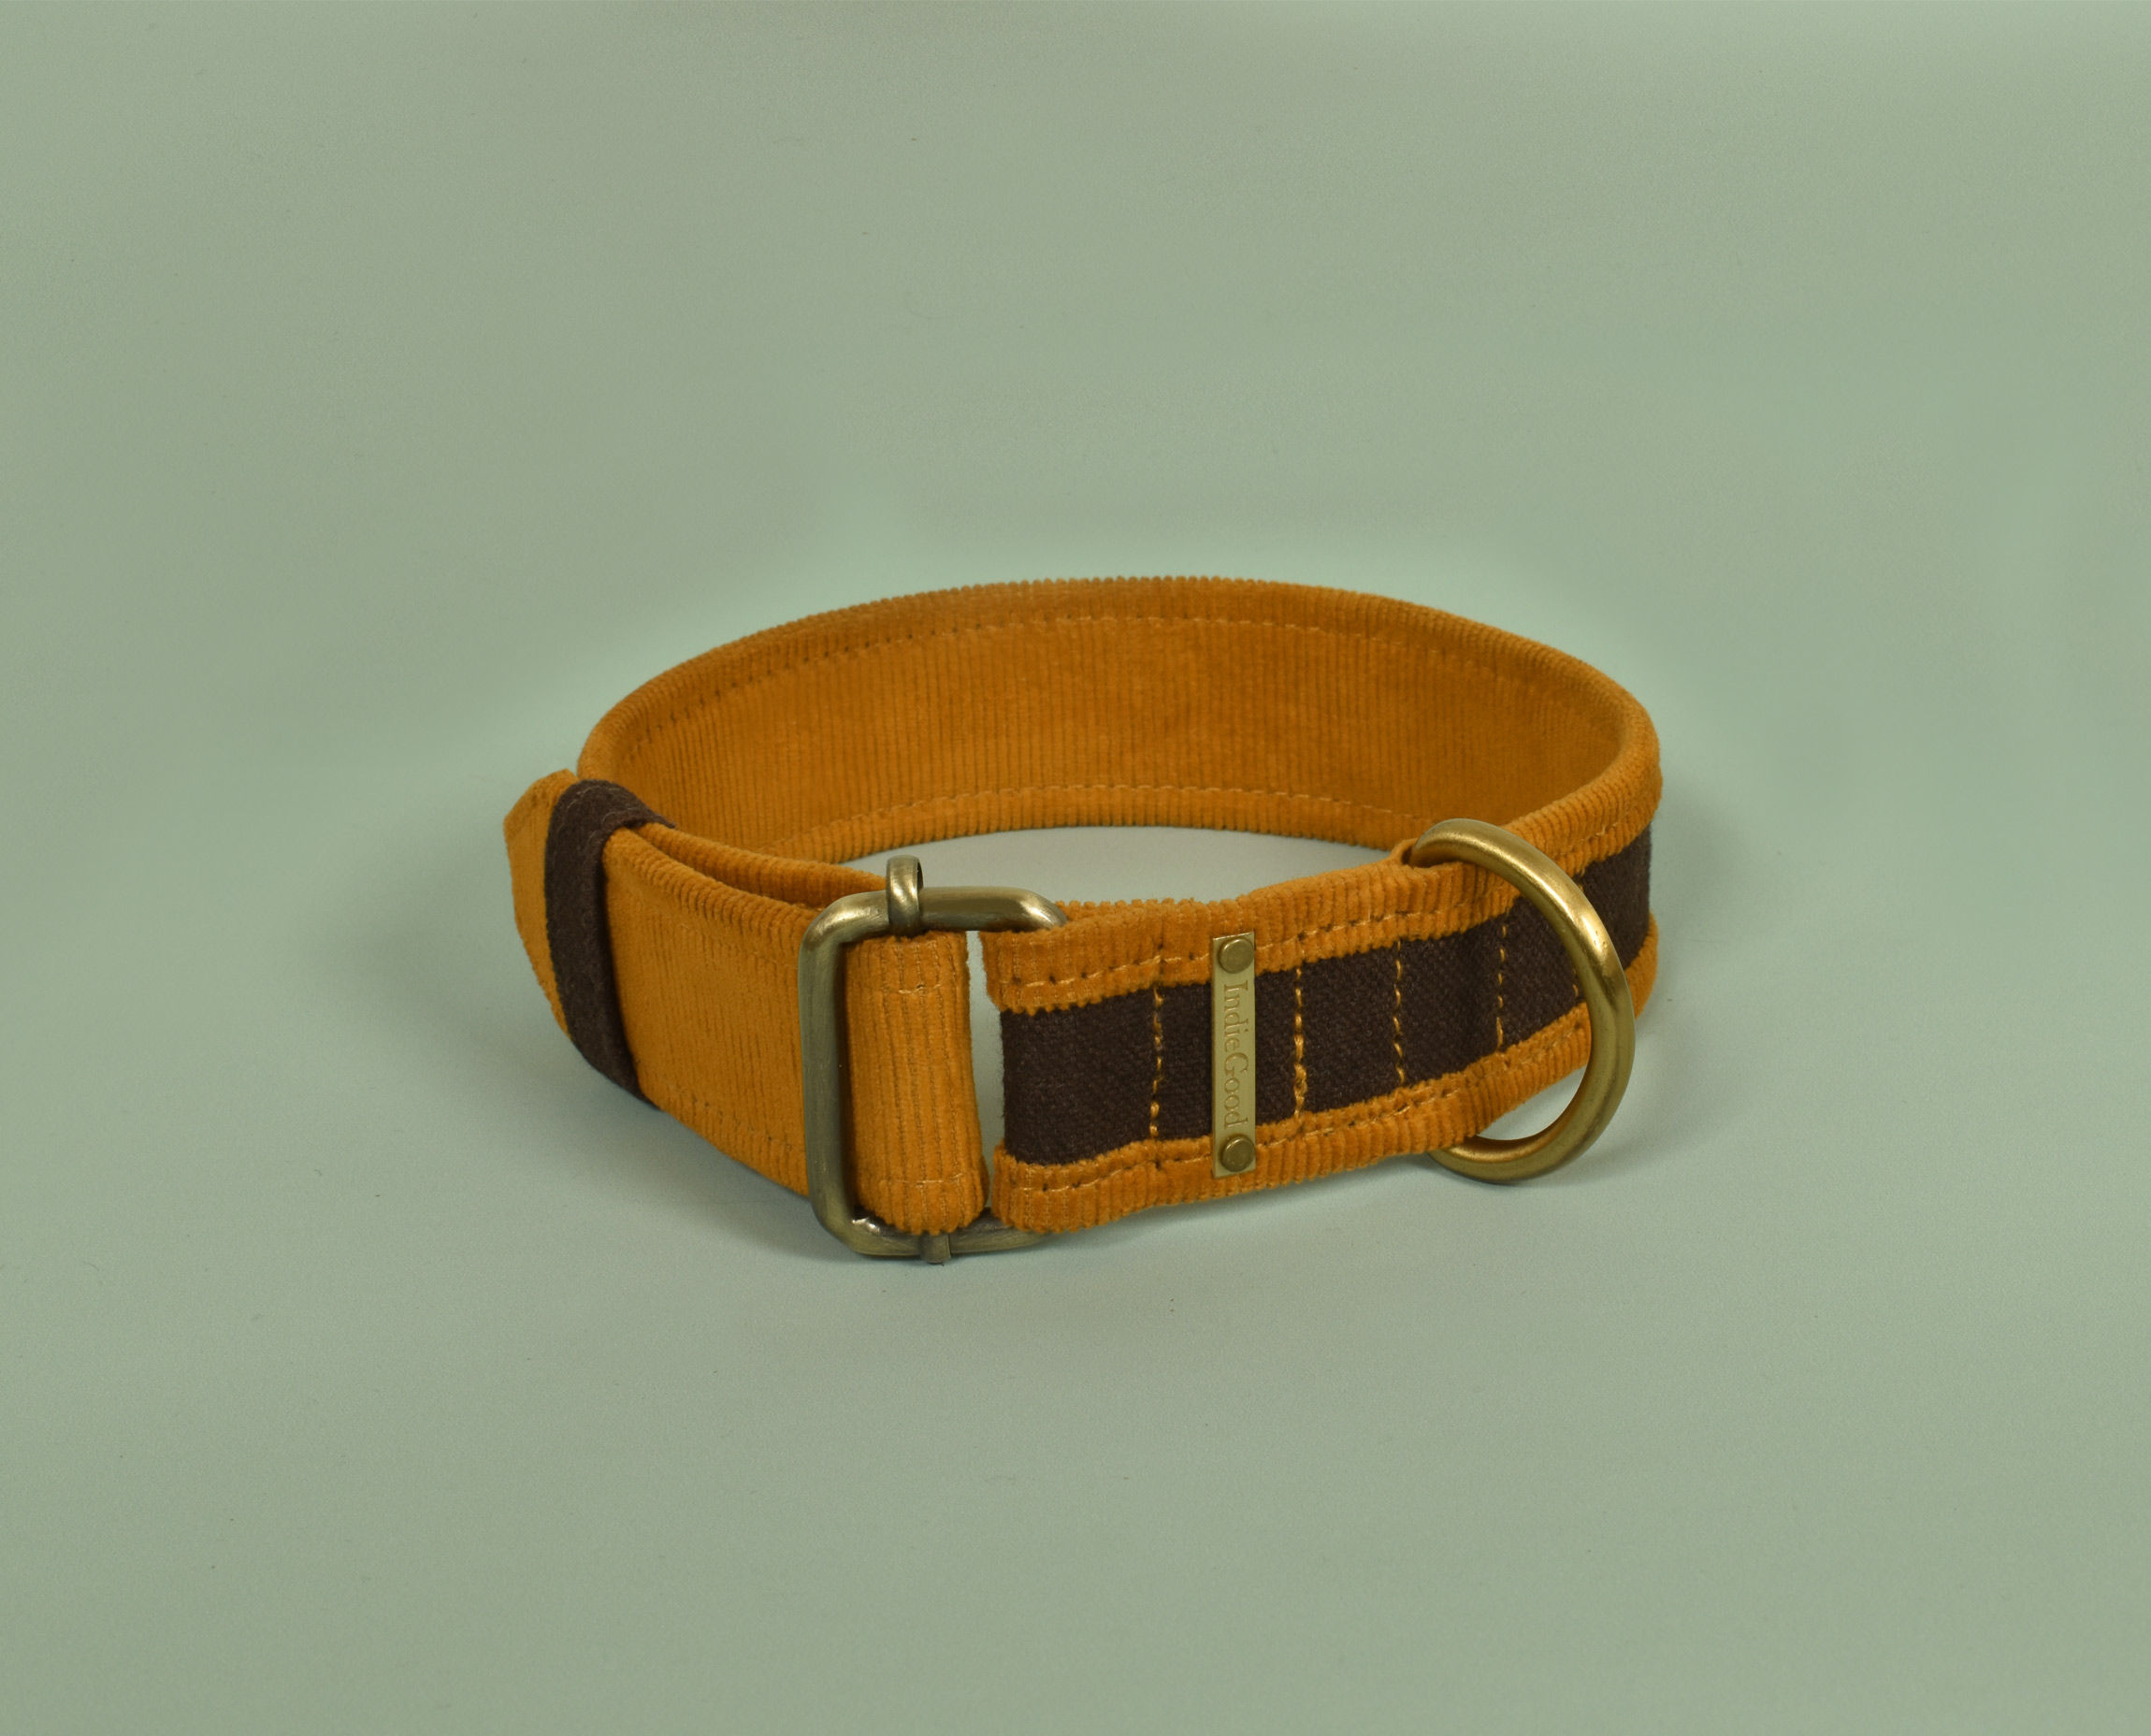 Celebrate the bond between you and your favorite buddy with this set of matching collar and bracelet. These bond collars are made of Organic Corduroy and Canvas which make it pleasant for you and your furry friend's skin. Hola! Now you can stay connected even when you're apart. The bracelets close with three snap buttons so they can fit every wrist size. The collars are available in three sizes, pawfect for every pooch.